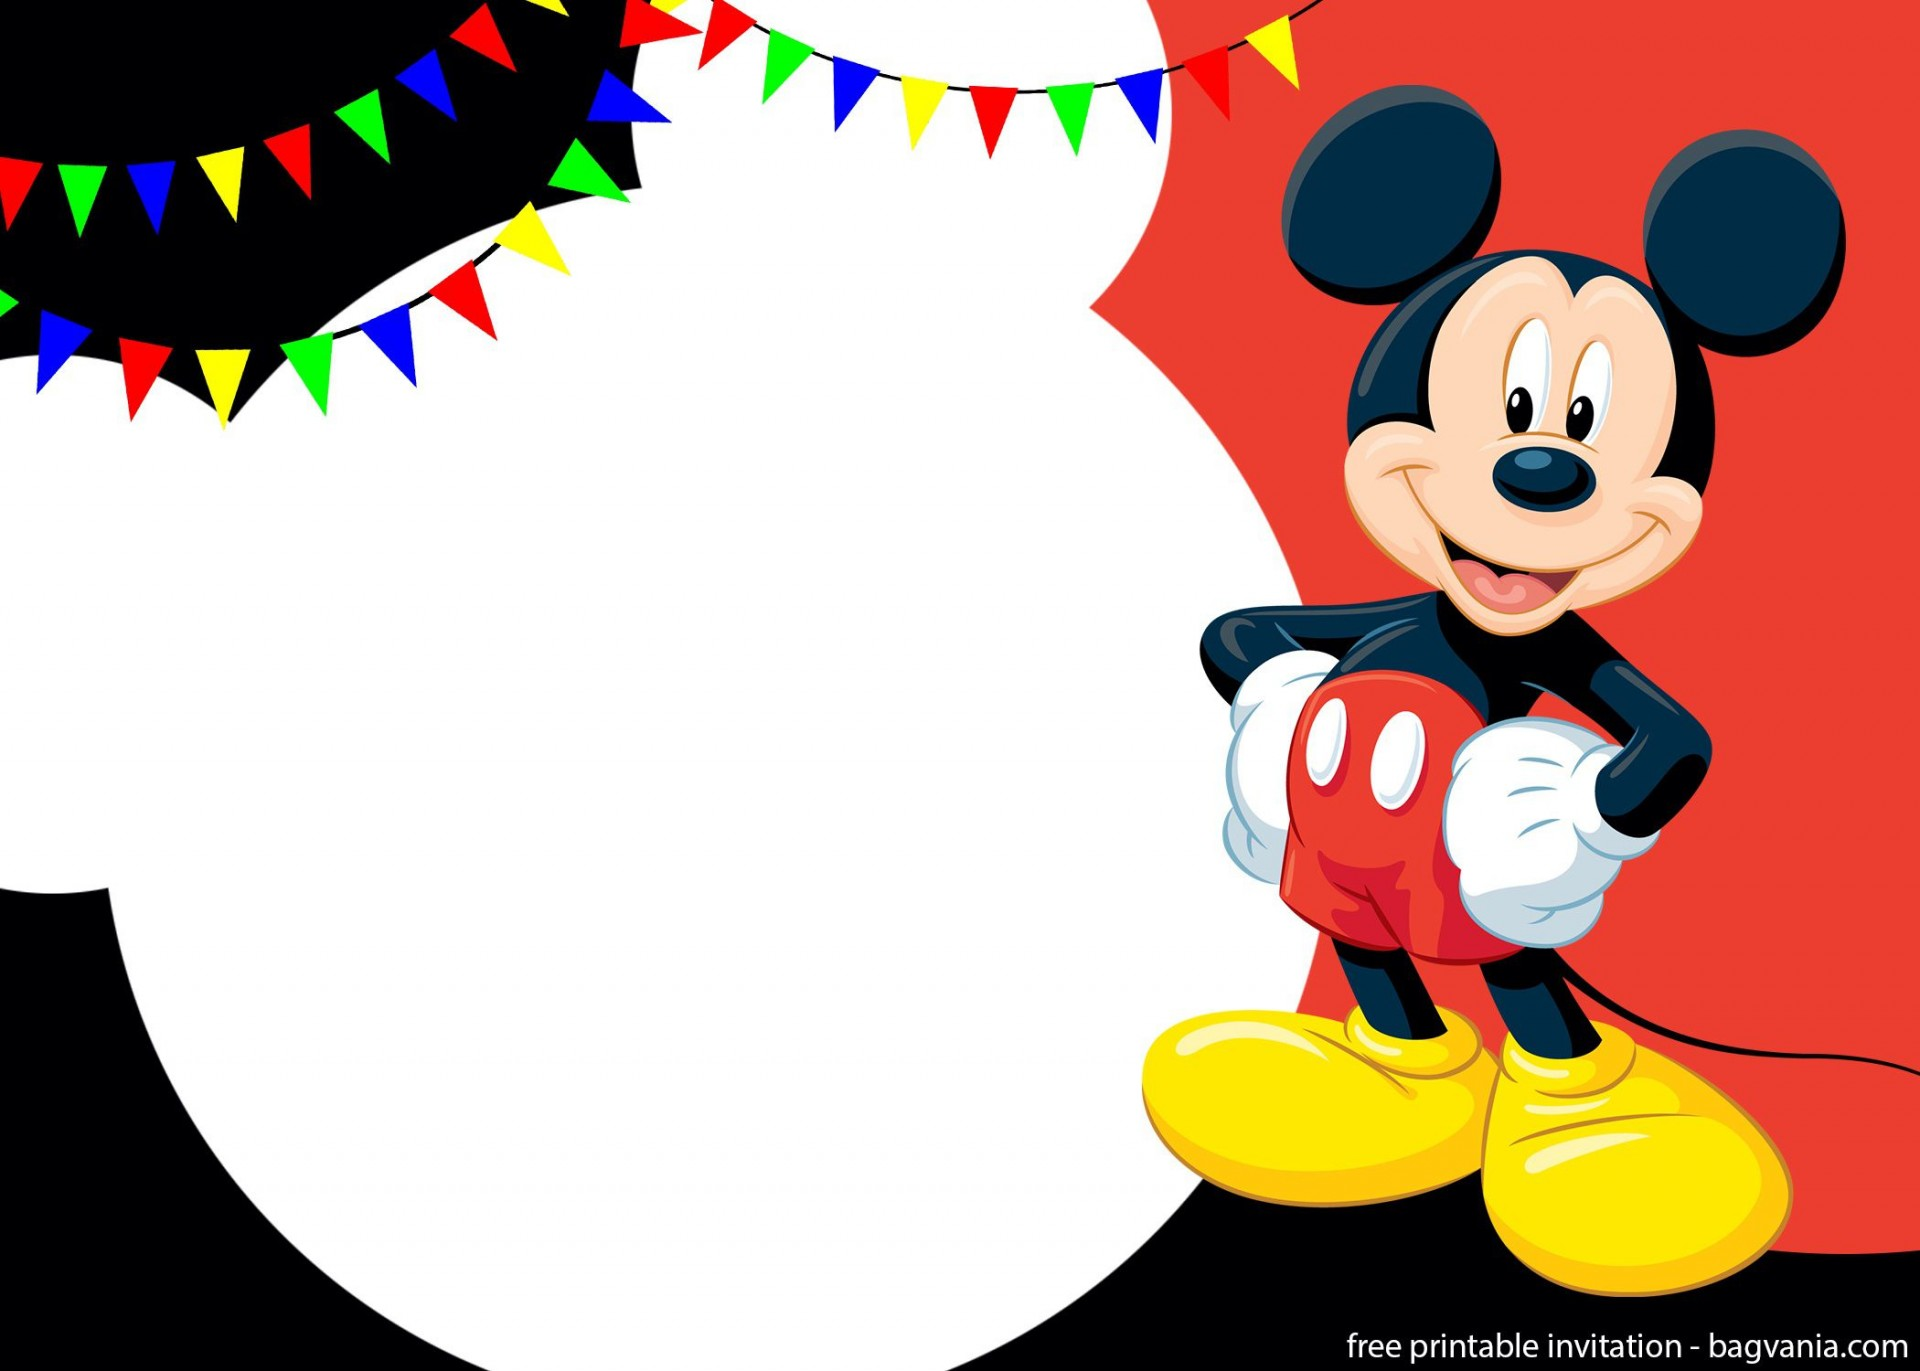 011 Impressive Mickey Mouse Invitation Template Sample  Templates Clubhouse Birthday Free 1st Download1920